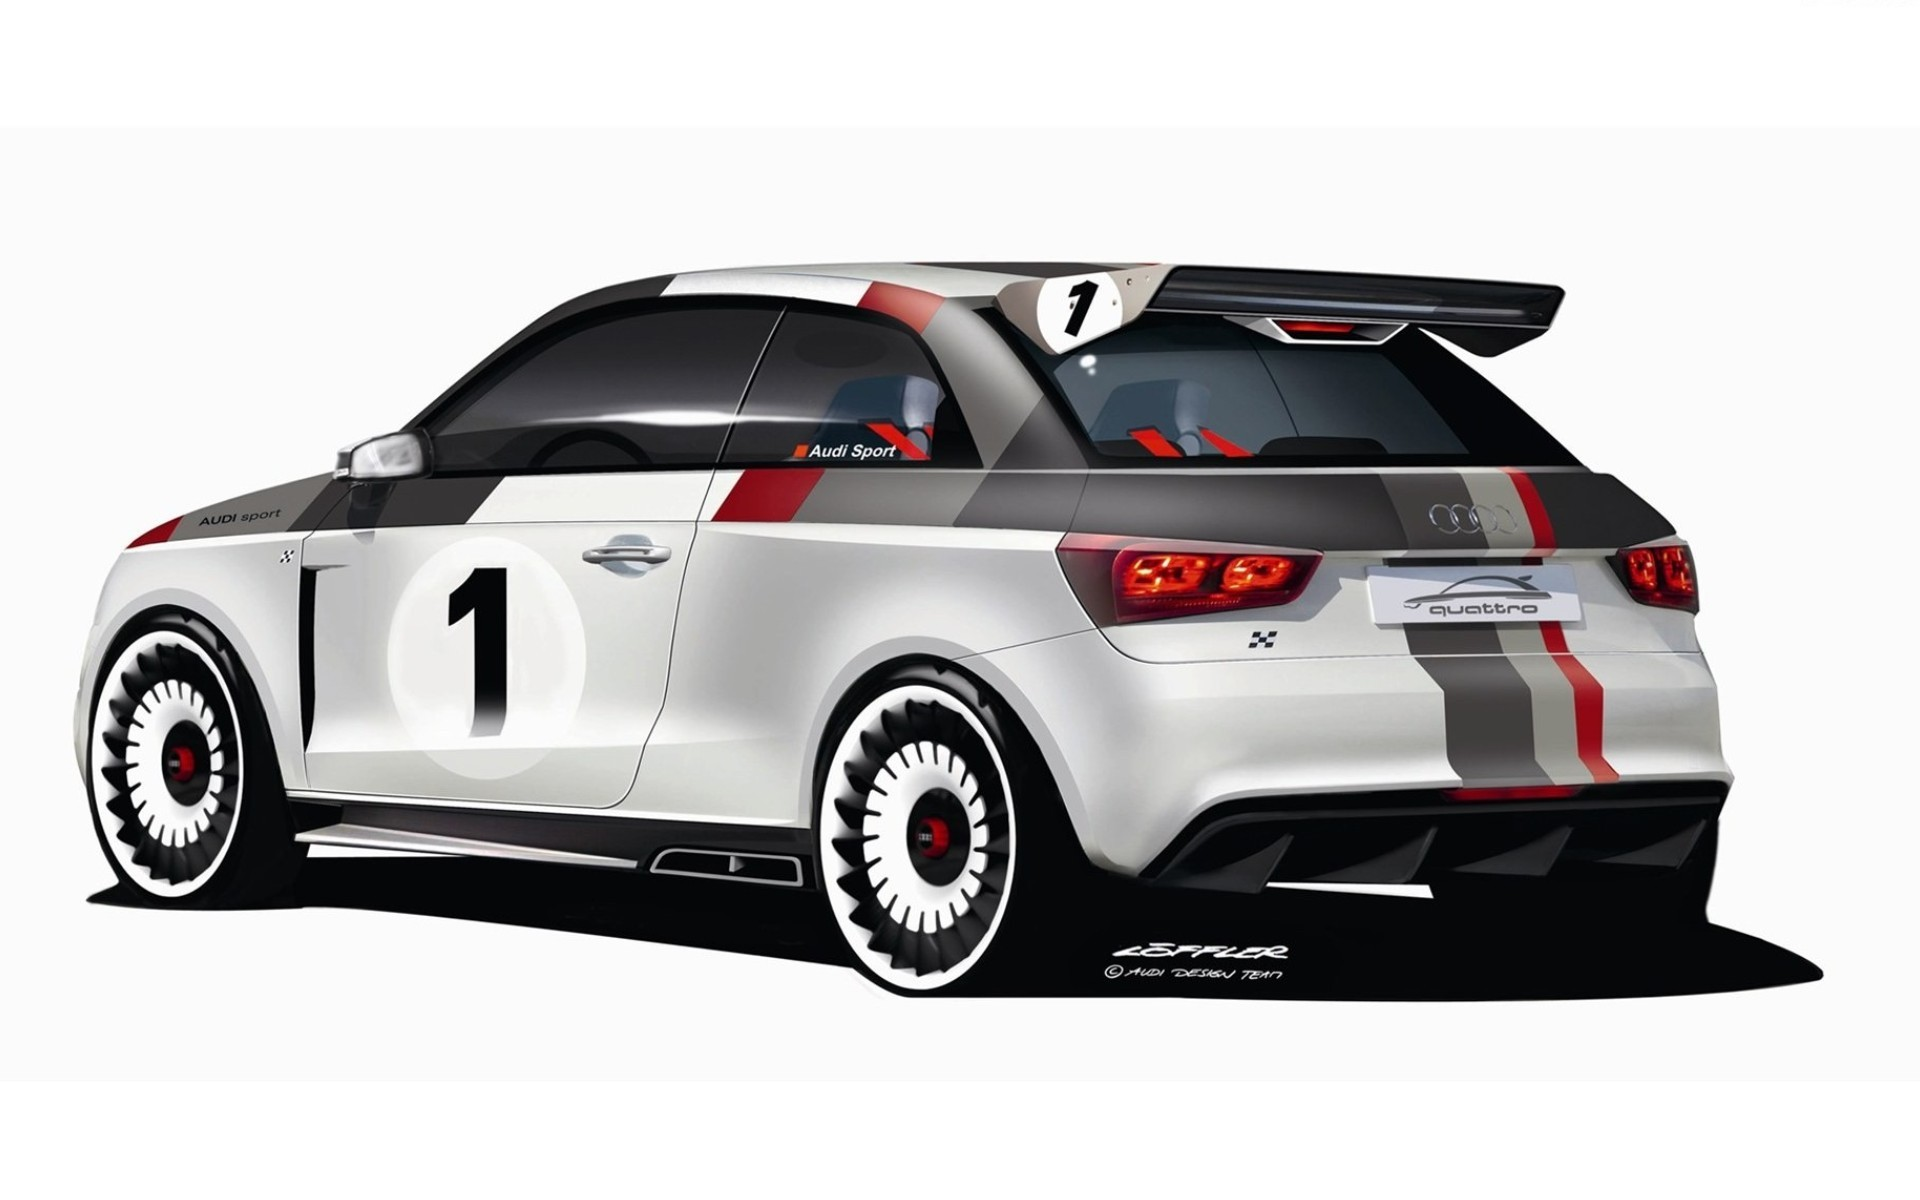 2018 Audi A1 clubsport quattro Concept photo - 1